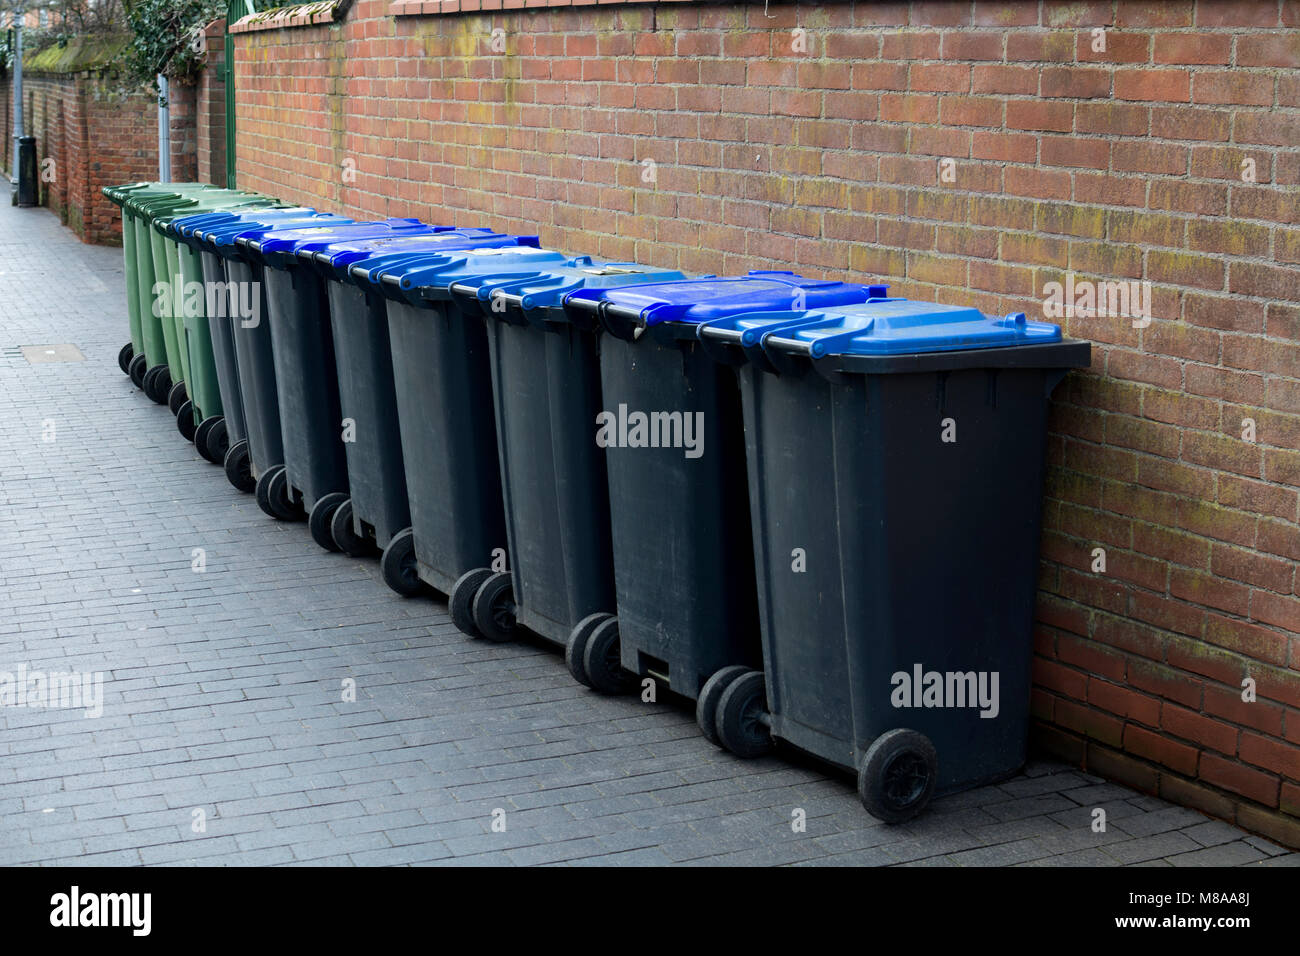 A row of domestic waste bins in a street, Stratford-upon-Avon, UK - Stock Image